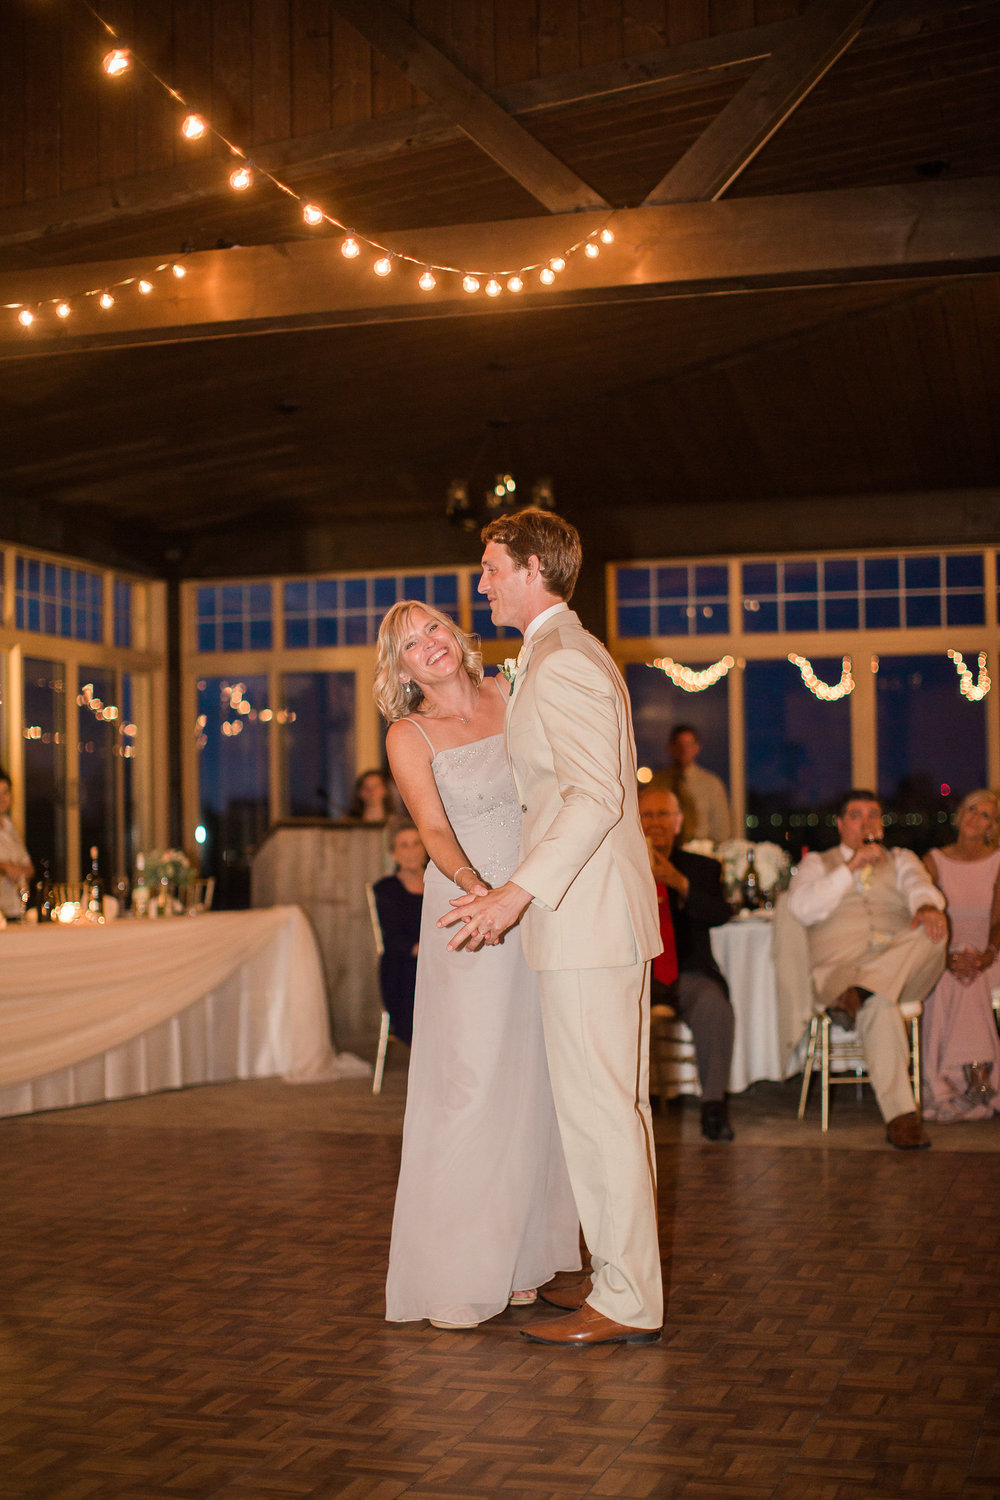 GarneauWeddingReception©ASP-362.jpg